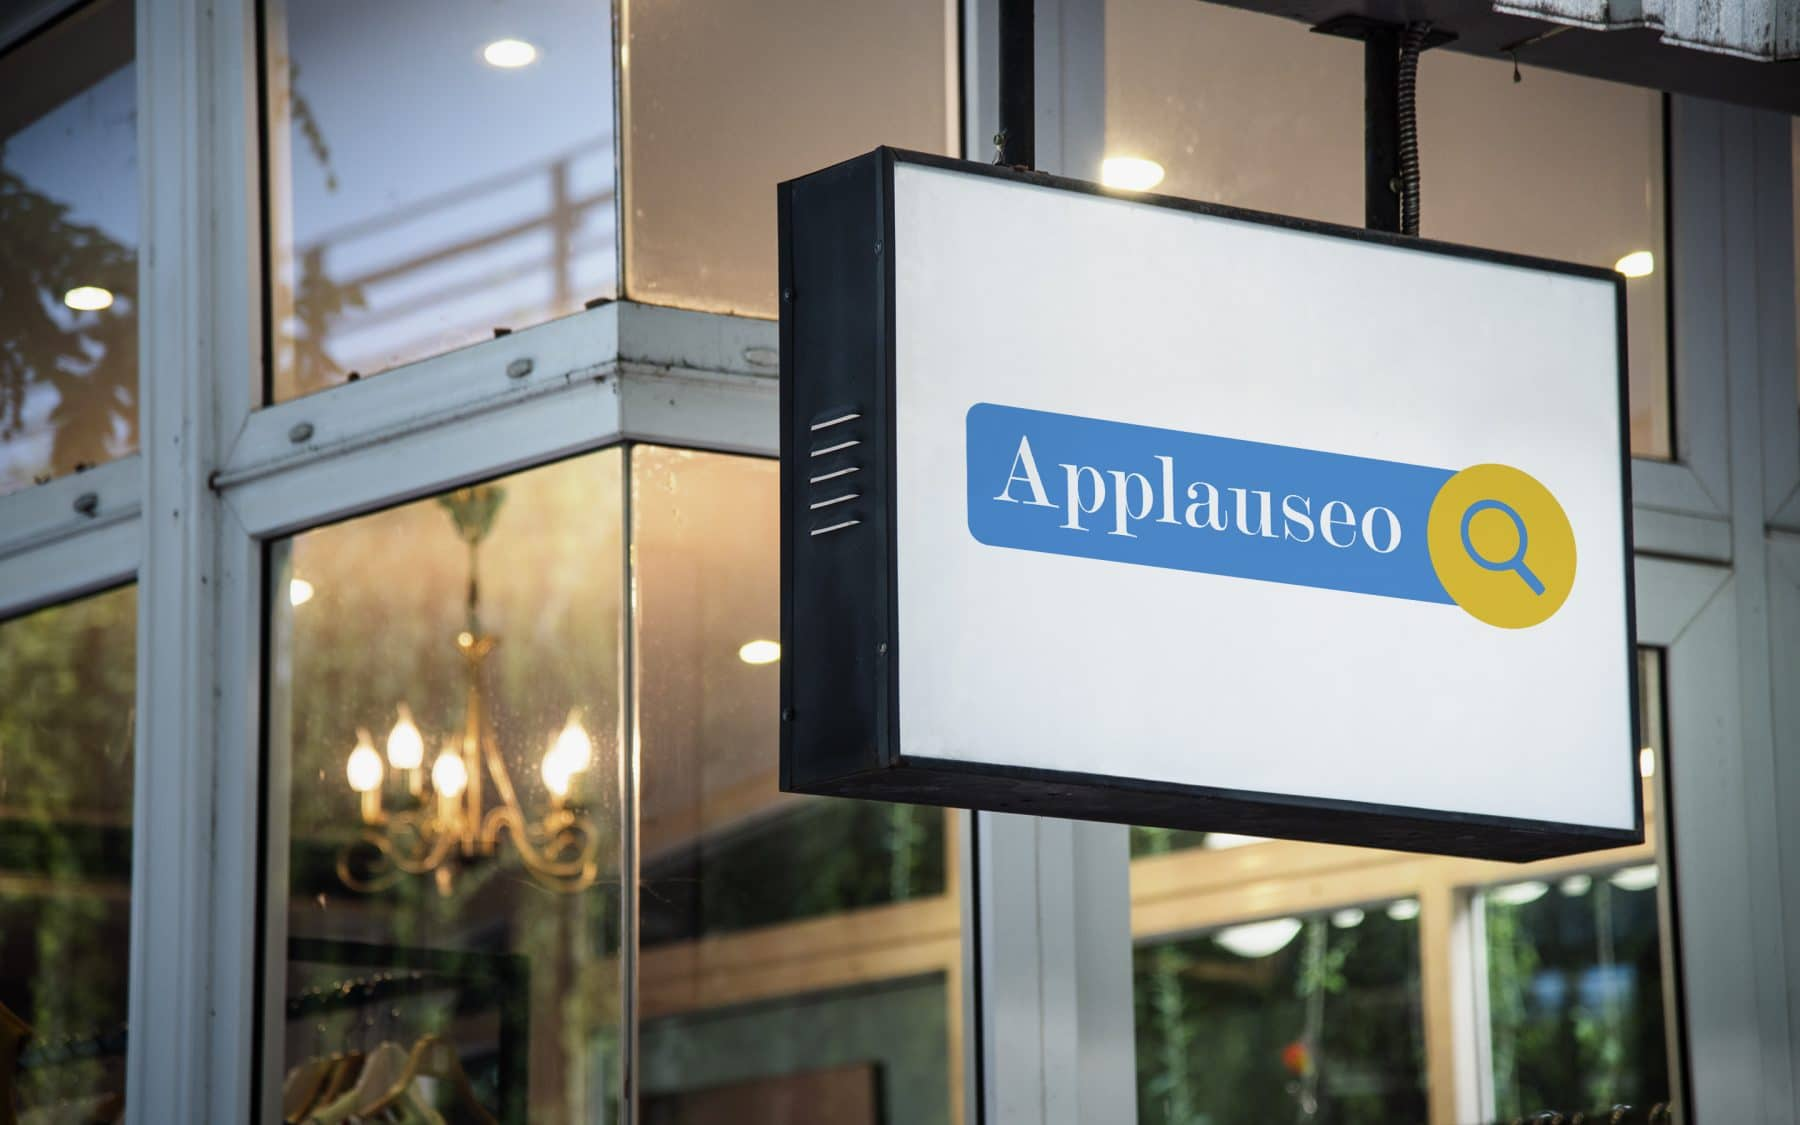 Applauseo 3